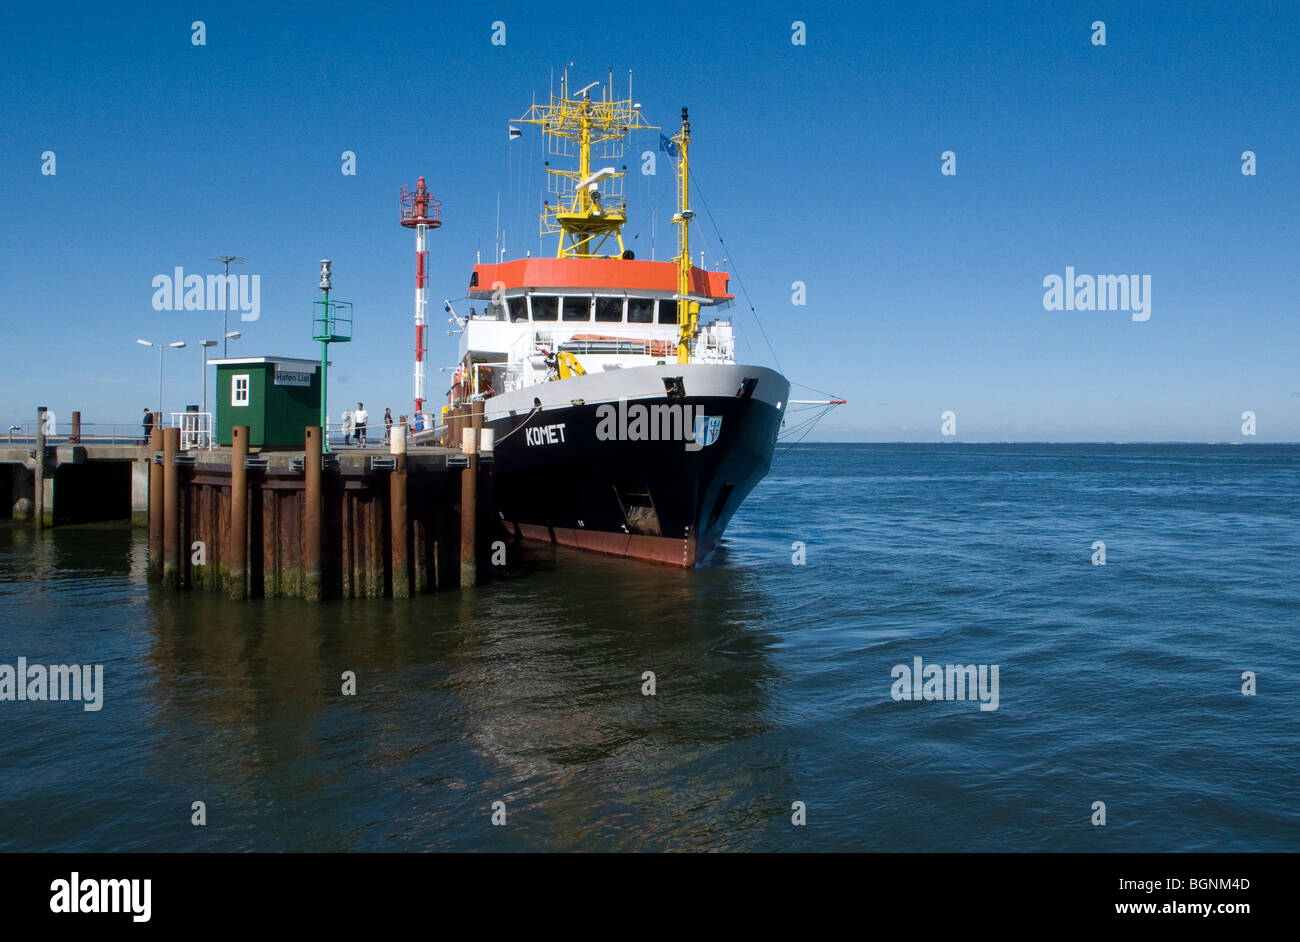 cargo ship at a pier on the island of sylt in northern germany - Stock Image